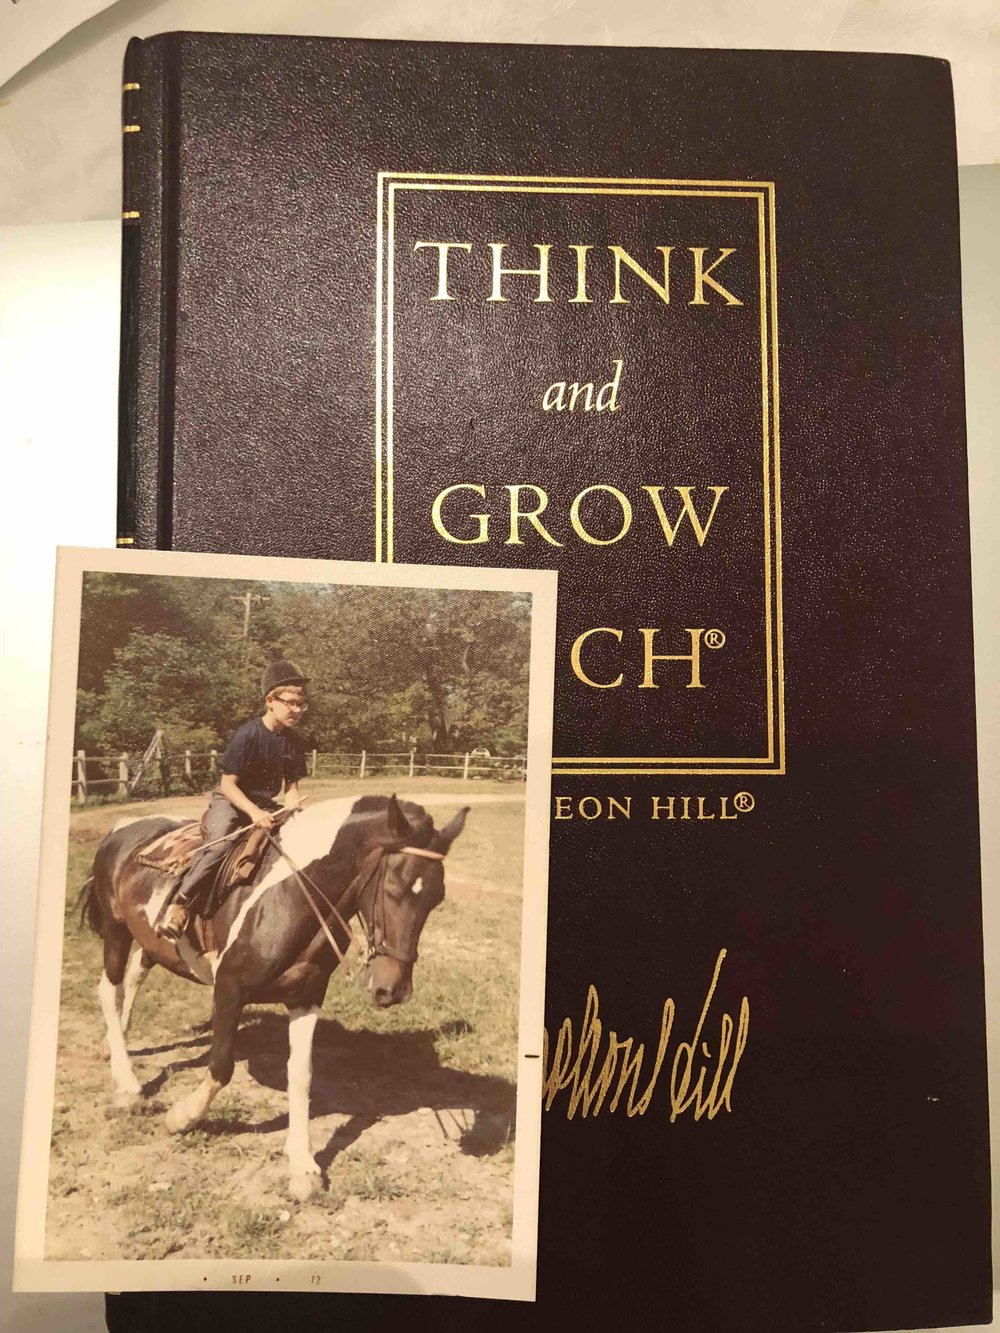 """This is my earliest Collector's Edition of """"Think and Grow Rich, circa 1972. Yes, that's me riding my horse """"Outrageous"""", I must have been about 10 years old!"""